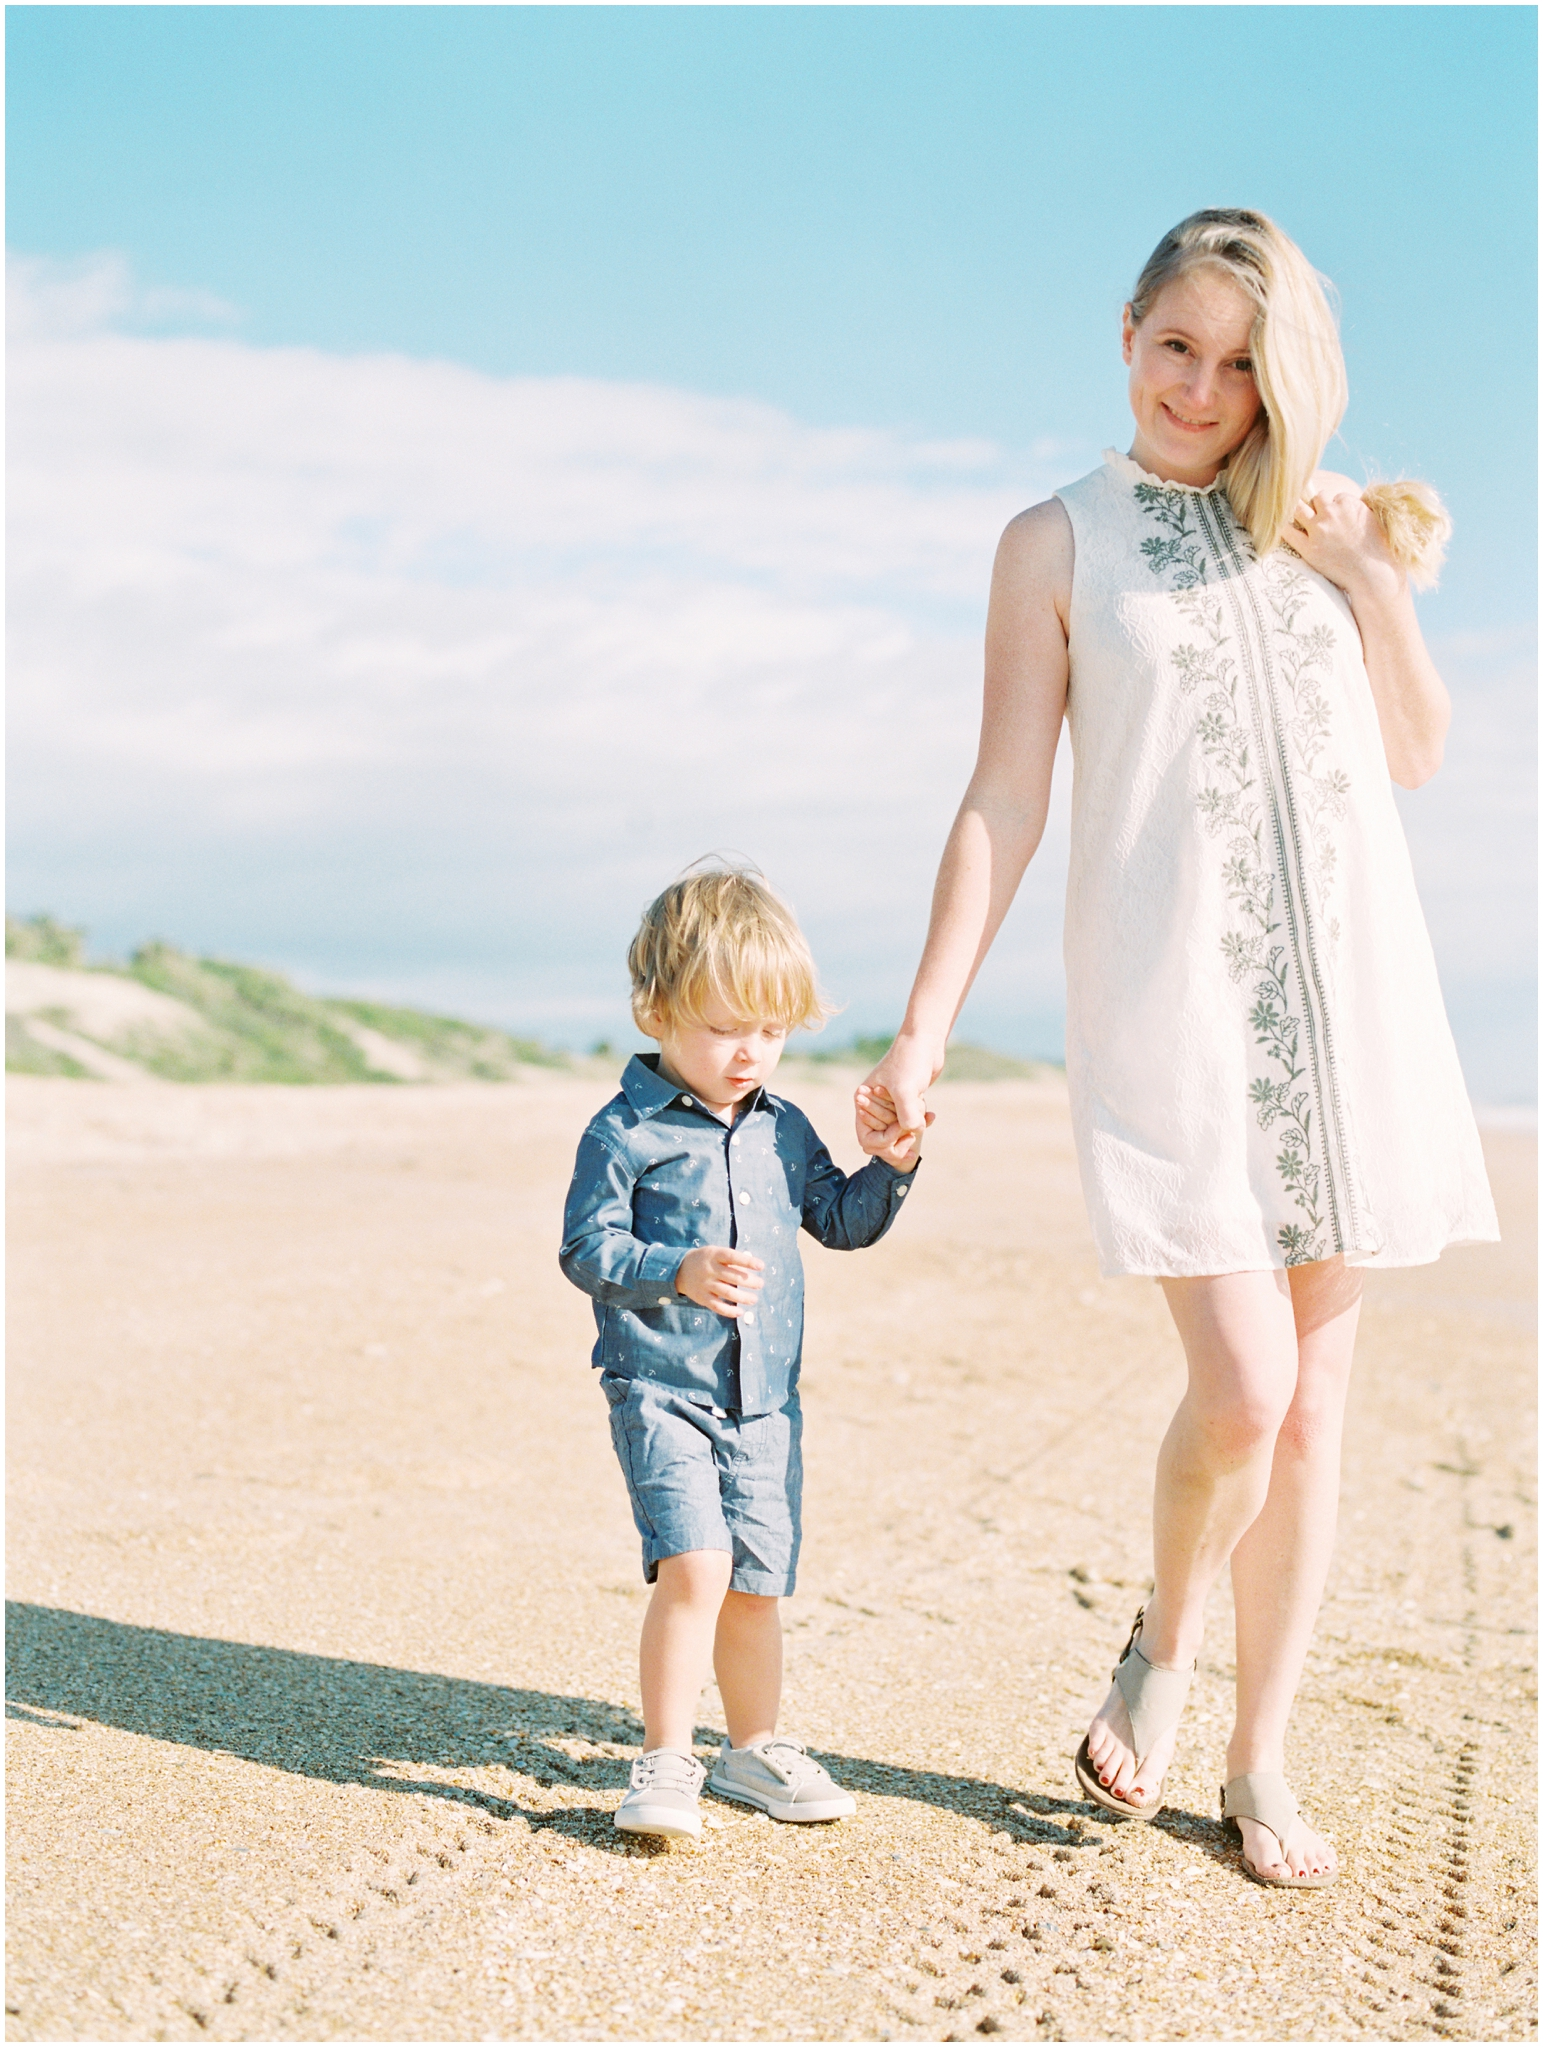 Lisa Silva Photography- Jacksonville, St. Augustine, Amelia Island, Ponte Vedra Beach, North East Florida Fine Art Film Photographer- Mommy and Me Lifestyle Session in Ponte Vedra Beach_0006.jpg